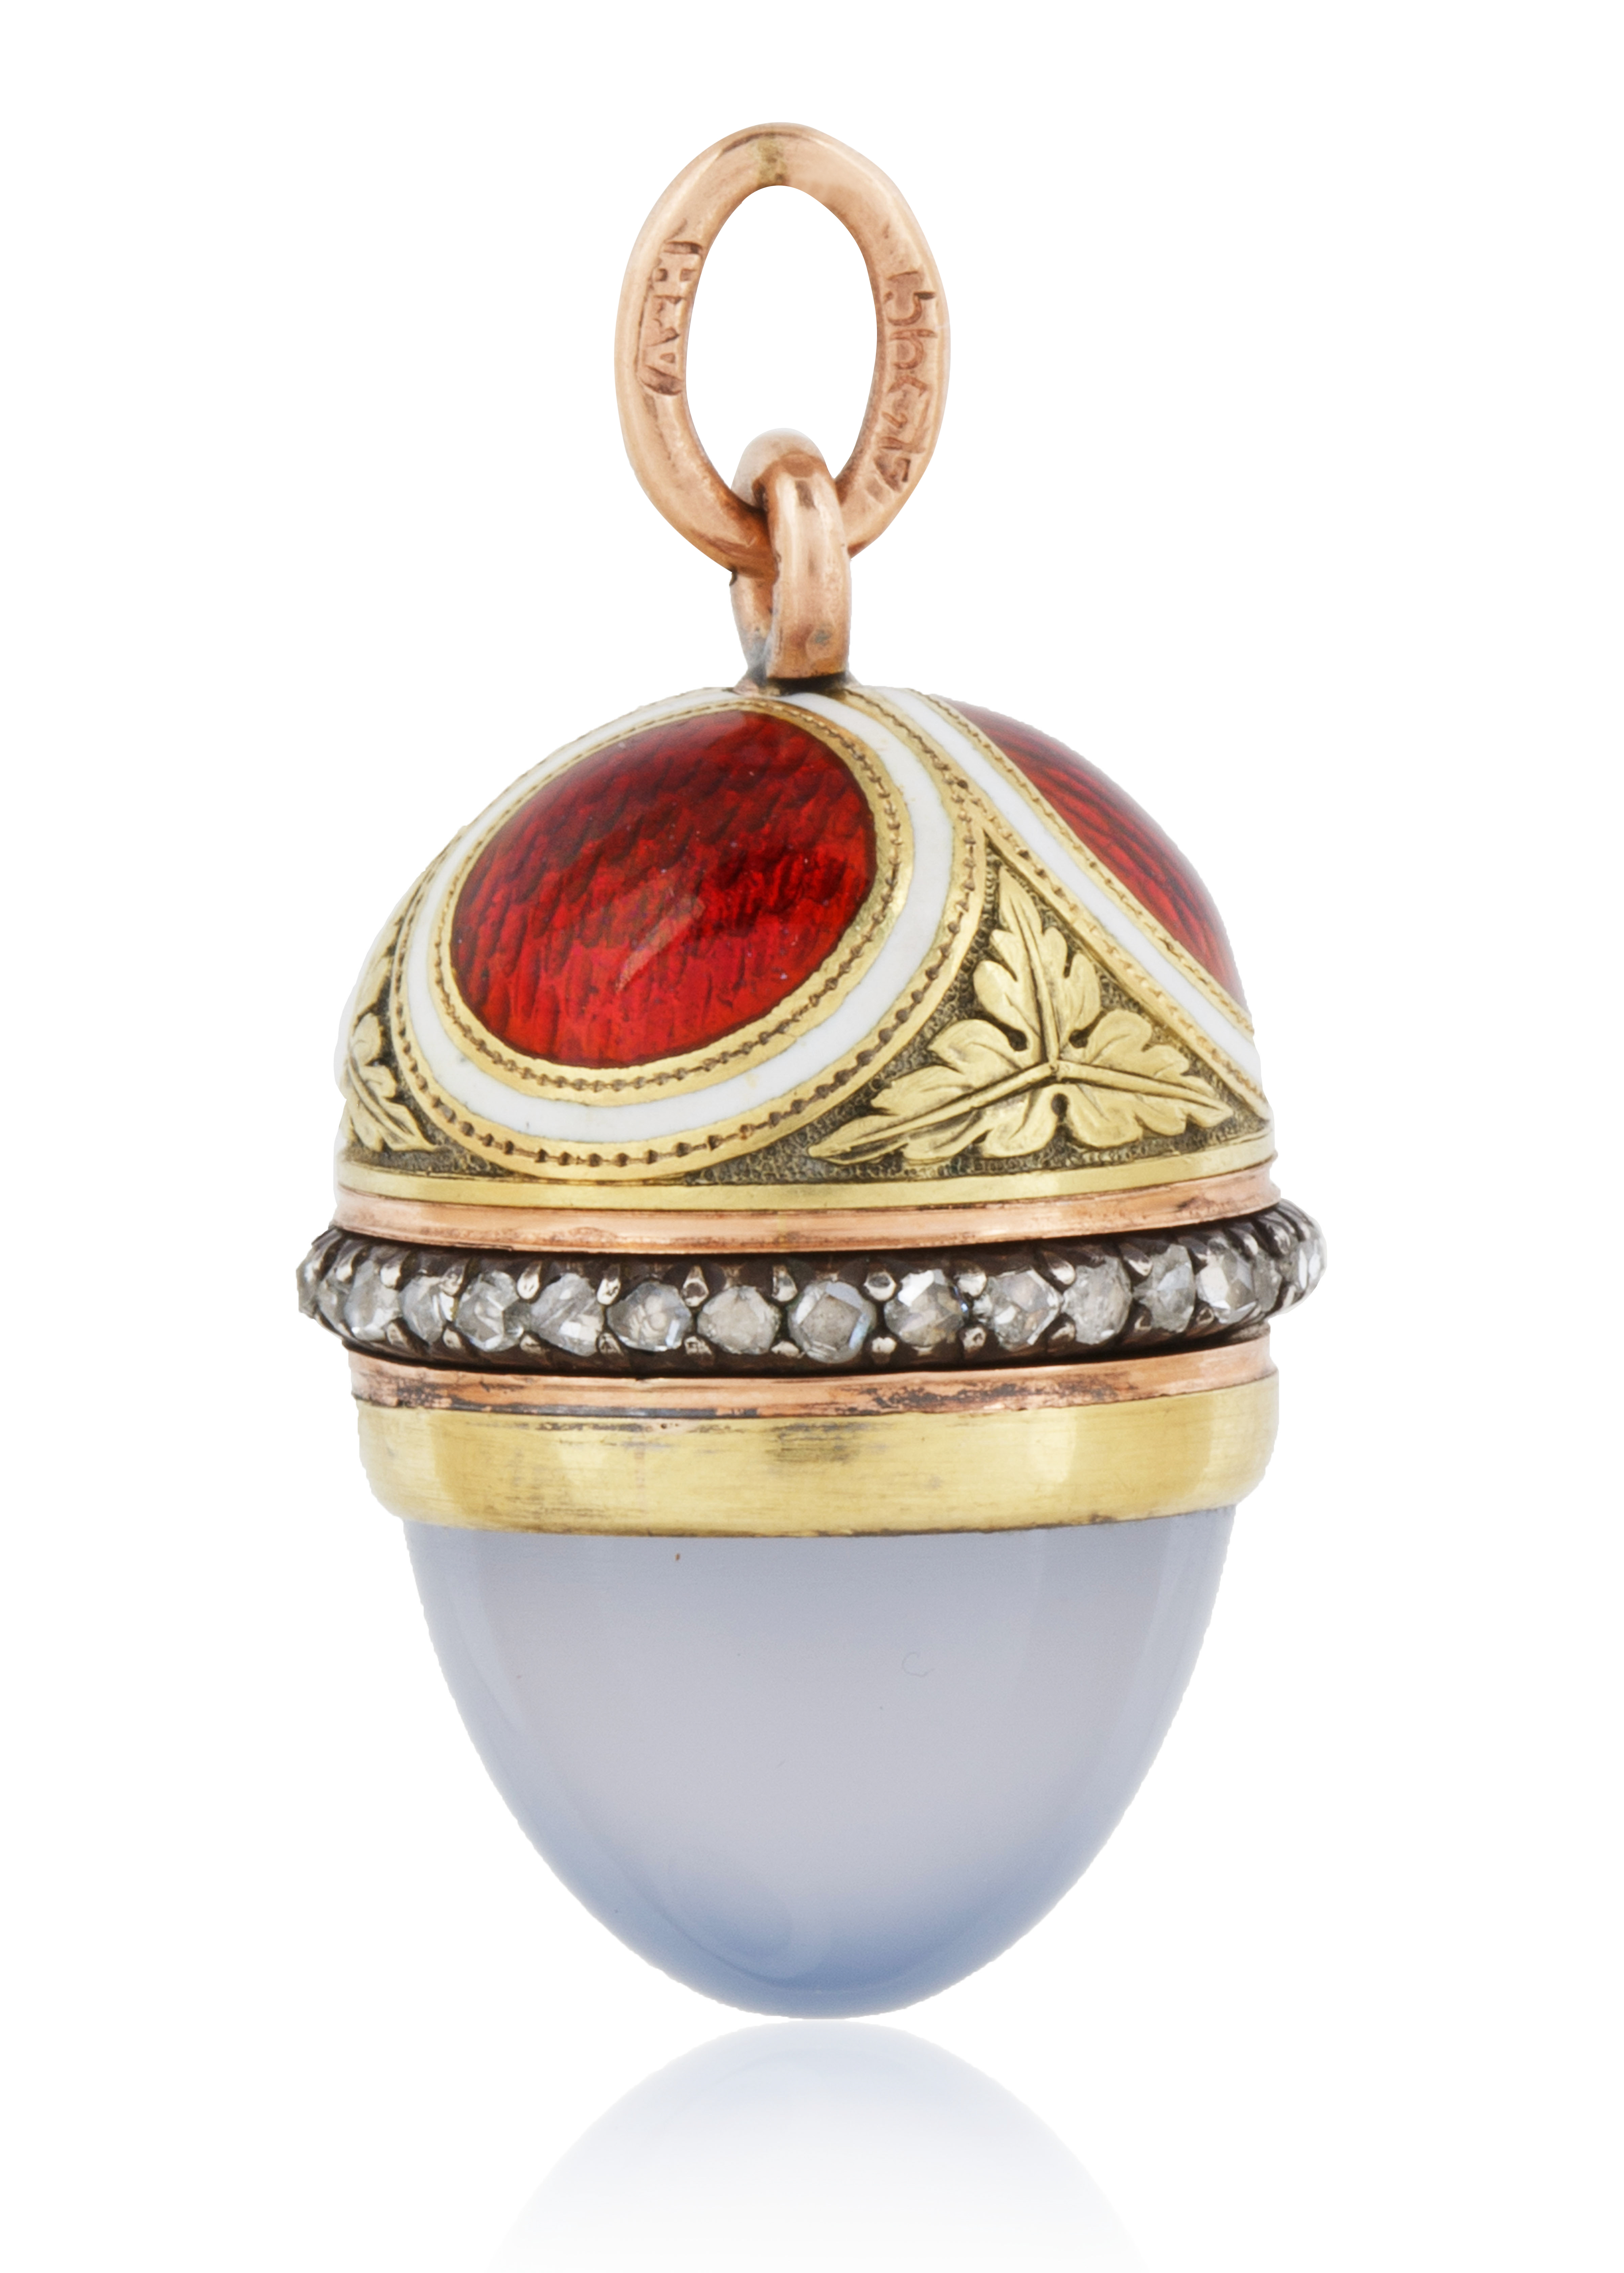 A 1908-1912 FABERGE AUGUST HOLLMING RUSSIAN GOLD, DIAMOND, MOONSTONE AND ENAMEL EGG PENDANT, ST. PET - Image 2 of 4